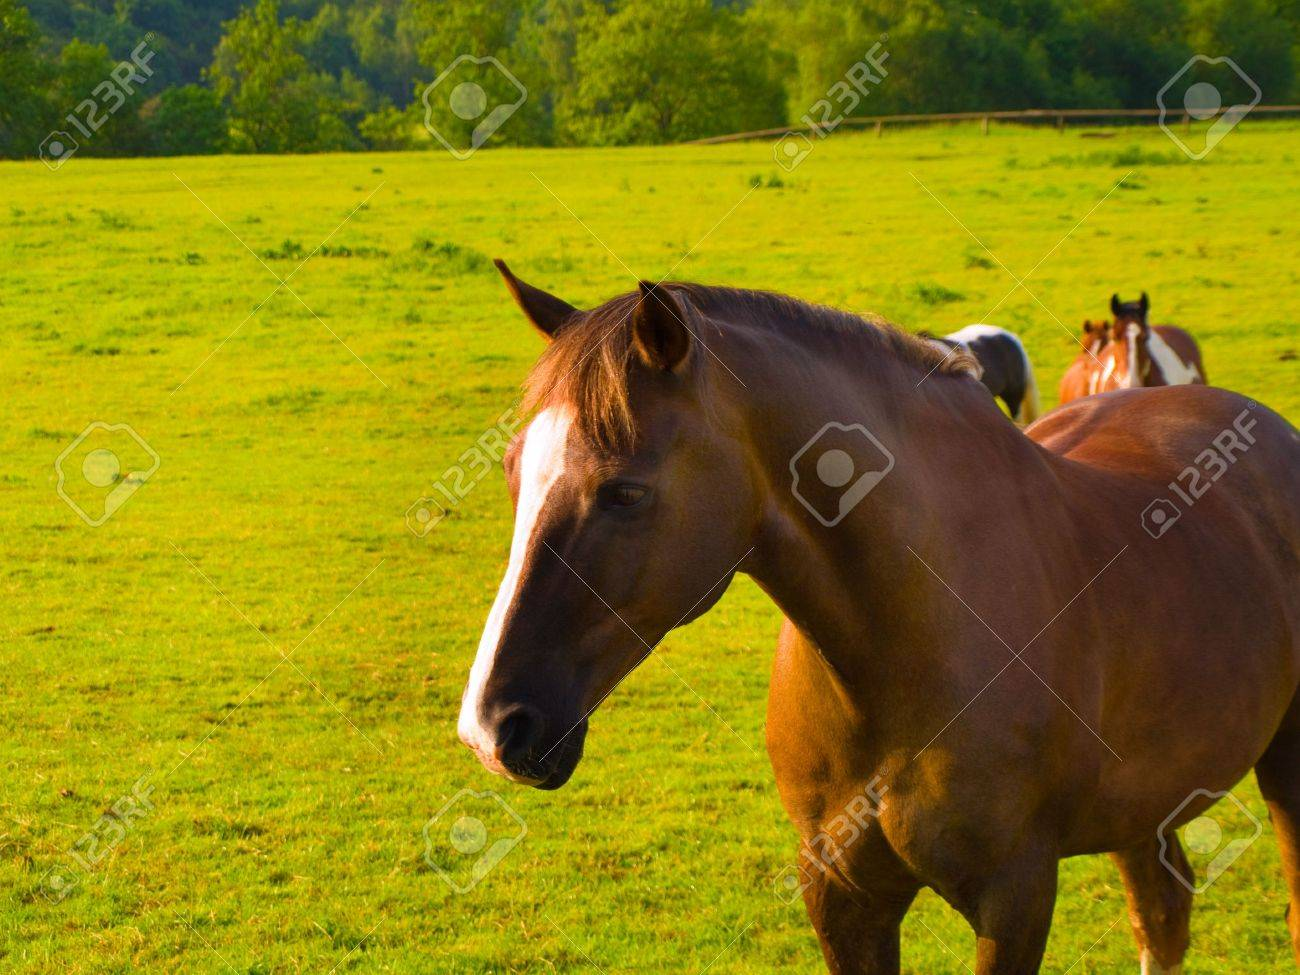 Horse in Beautiful Green Field in British Summer Morning Stock Photo - 3264811